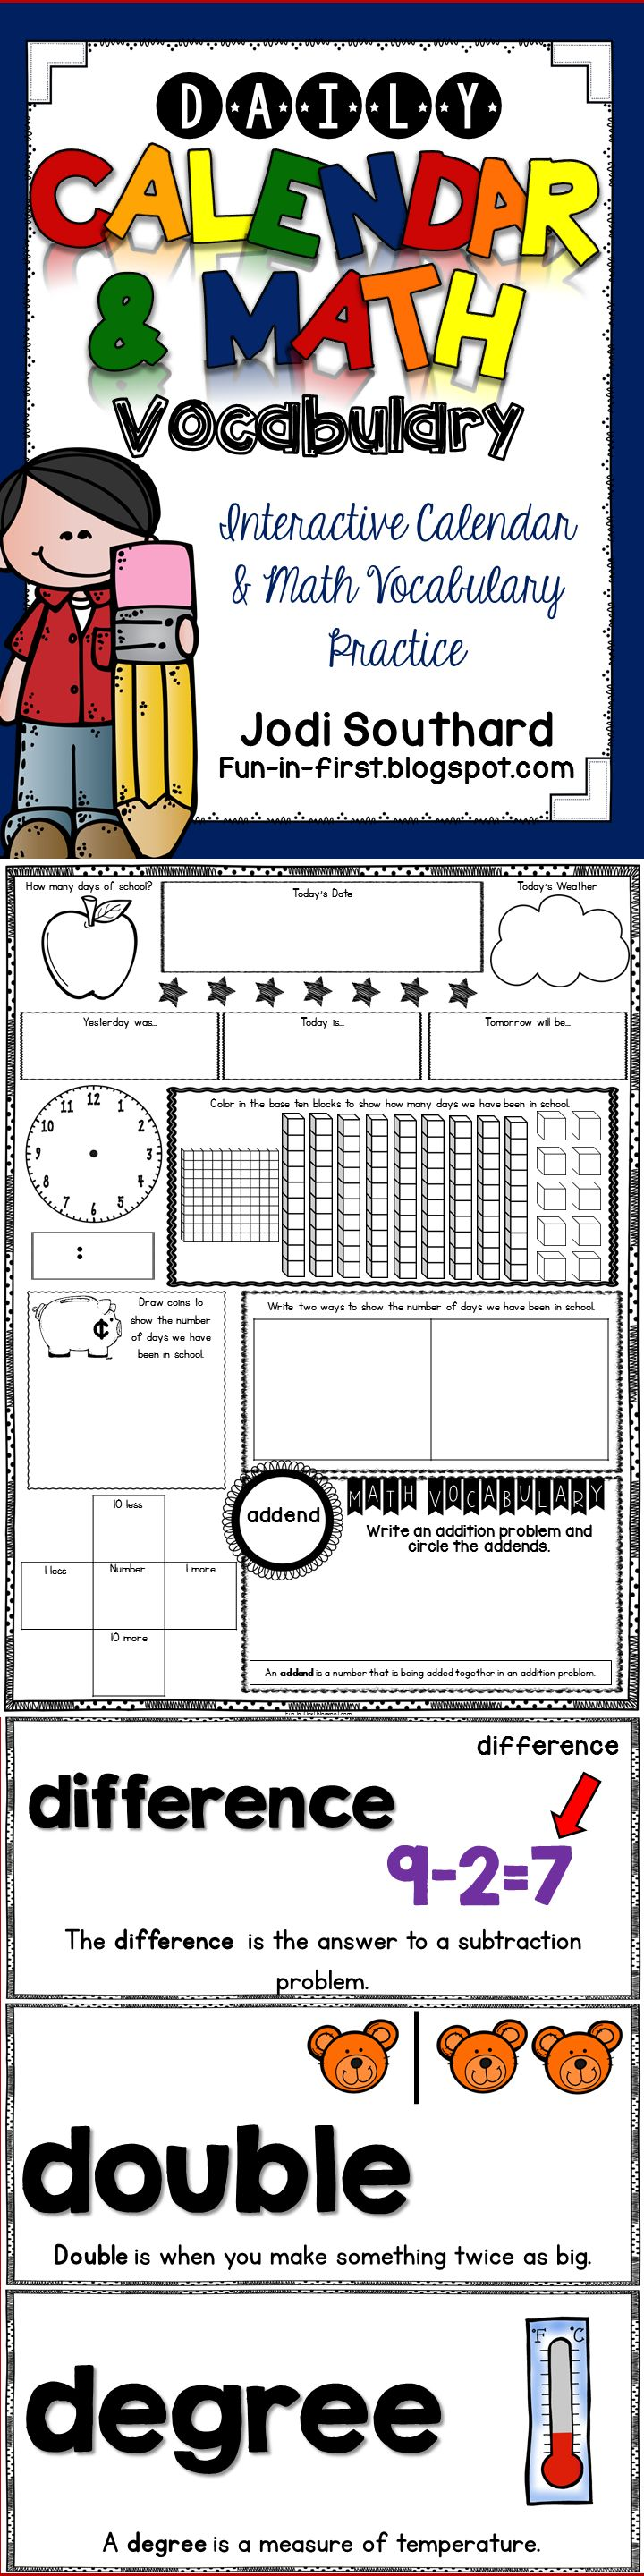 parade here we go again 1000 daily journal days week worksheets ...